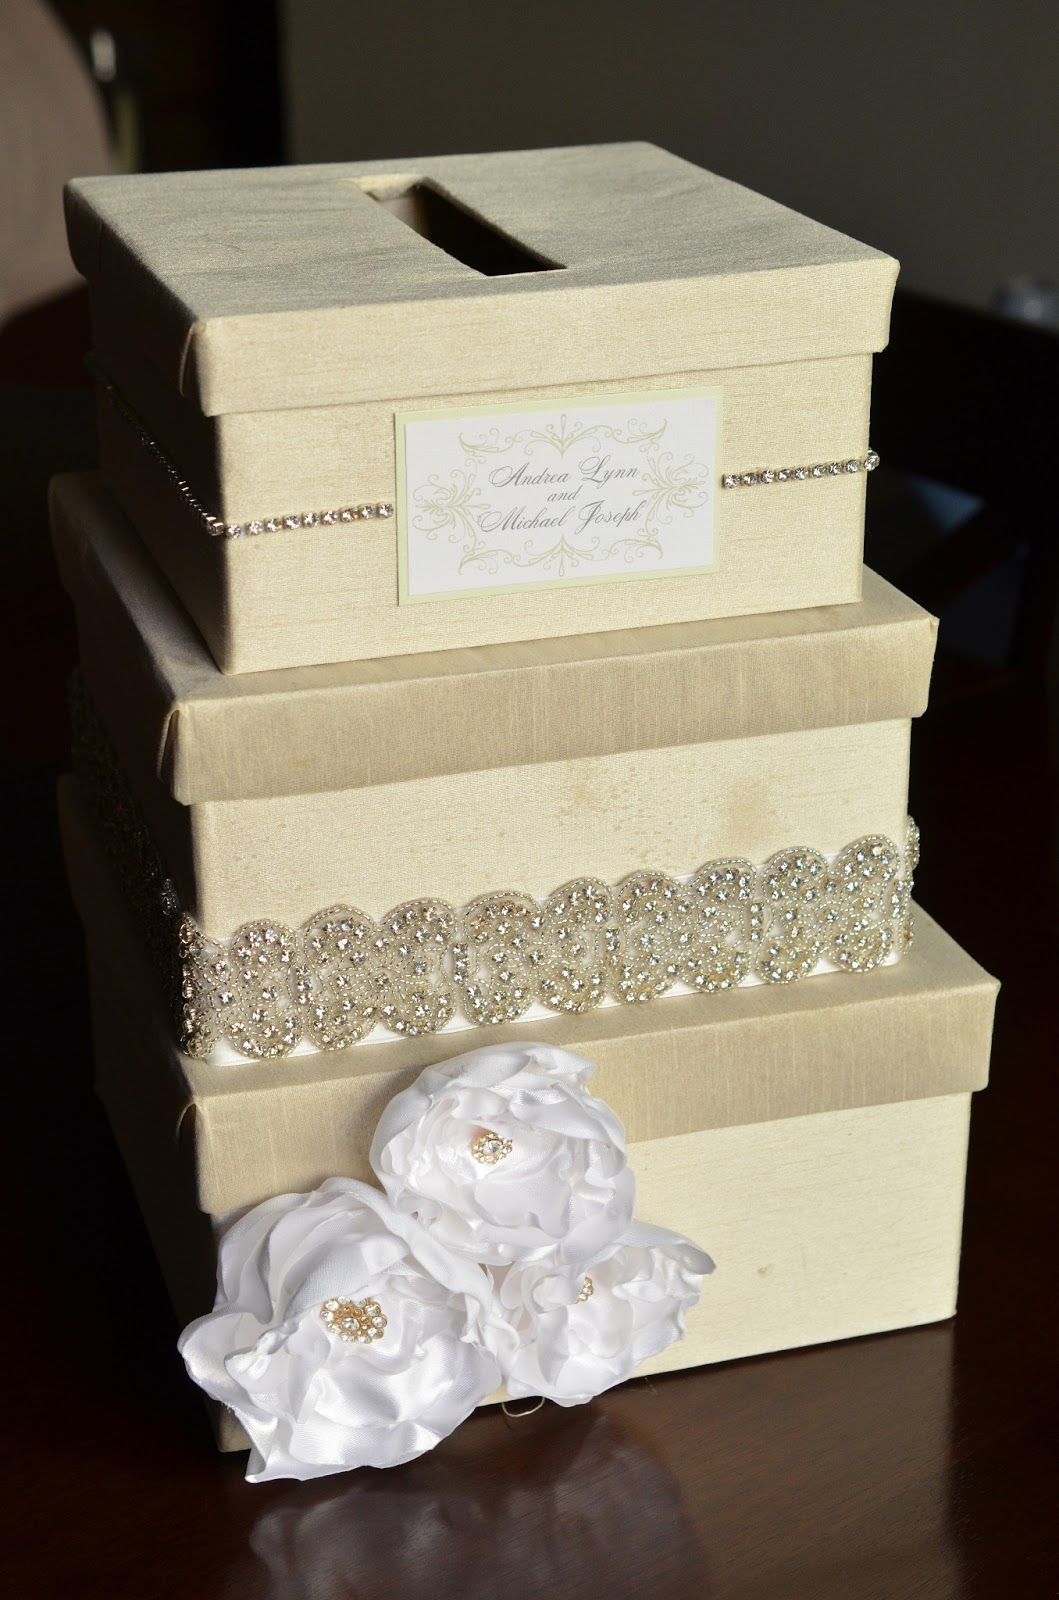 Andrea Lynn HANDMADE: DIY Wedding Card Box Tutorial | Wedding Ideas ...